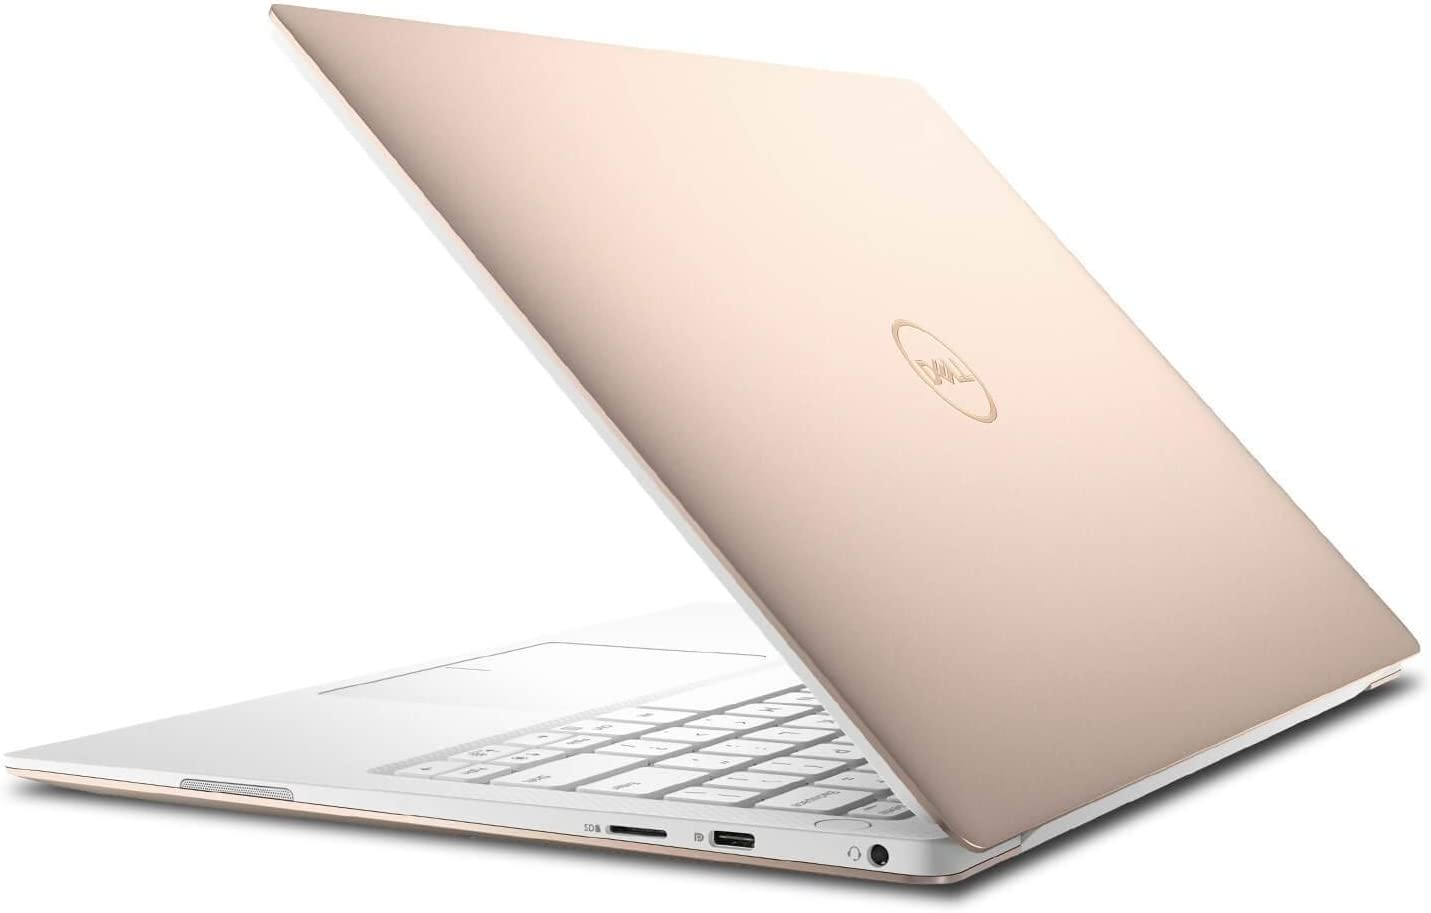 Dell XPS 13 9370 Laptop w/ Core i3-8130u (2.20GHz) / 4GB / FHD (1920 x 1080) Non-Touch / 512GB / Windows 10 - Gold (Renewed)